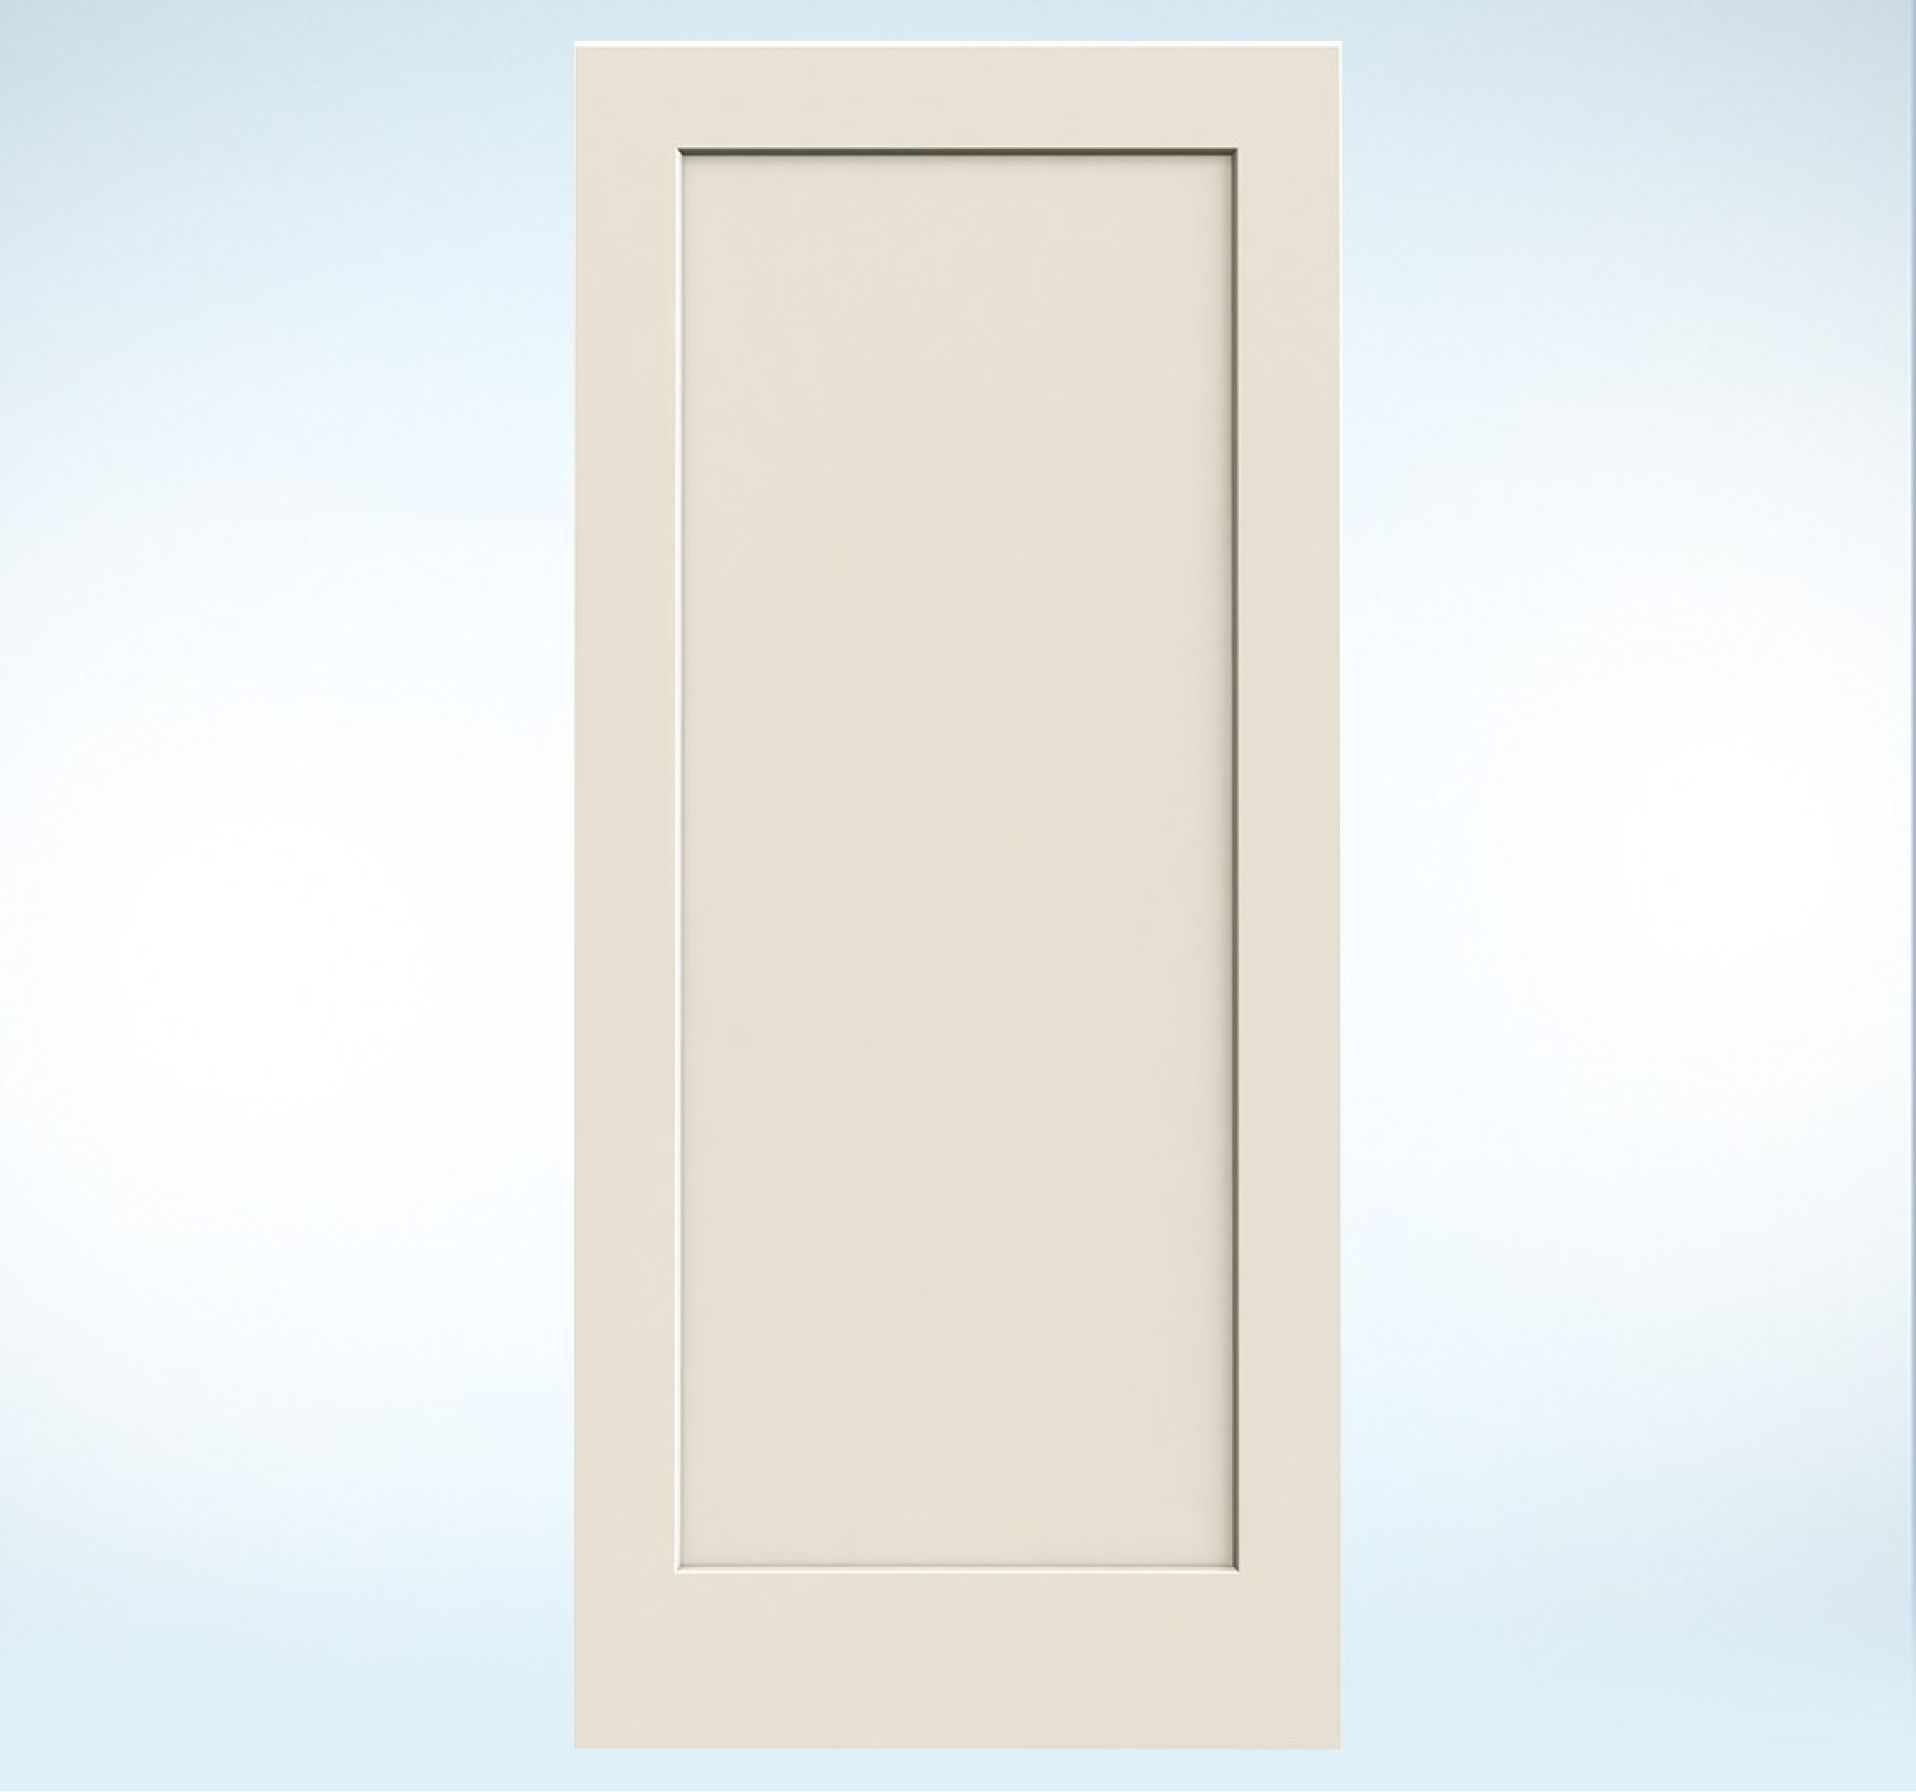 Molded wood composite all panel interior door also in  pine white slab   nnnac at rh pinterest